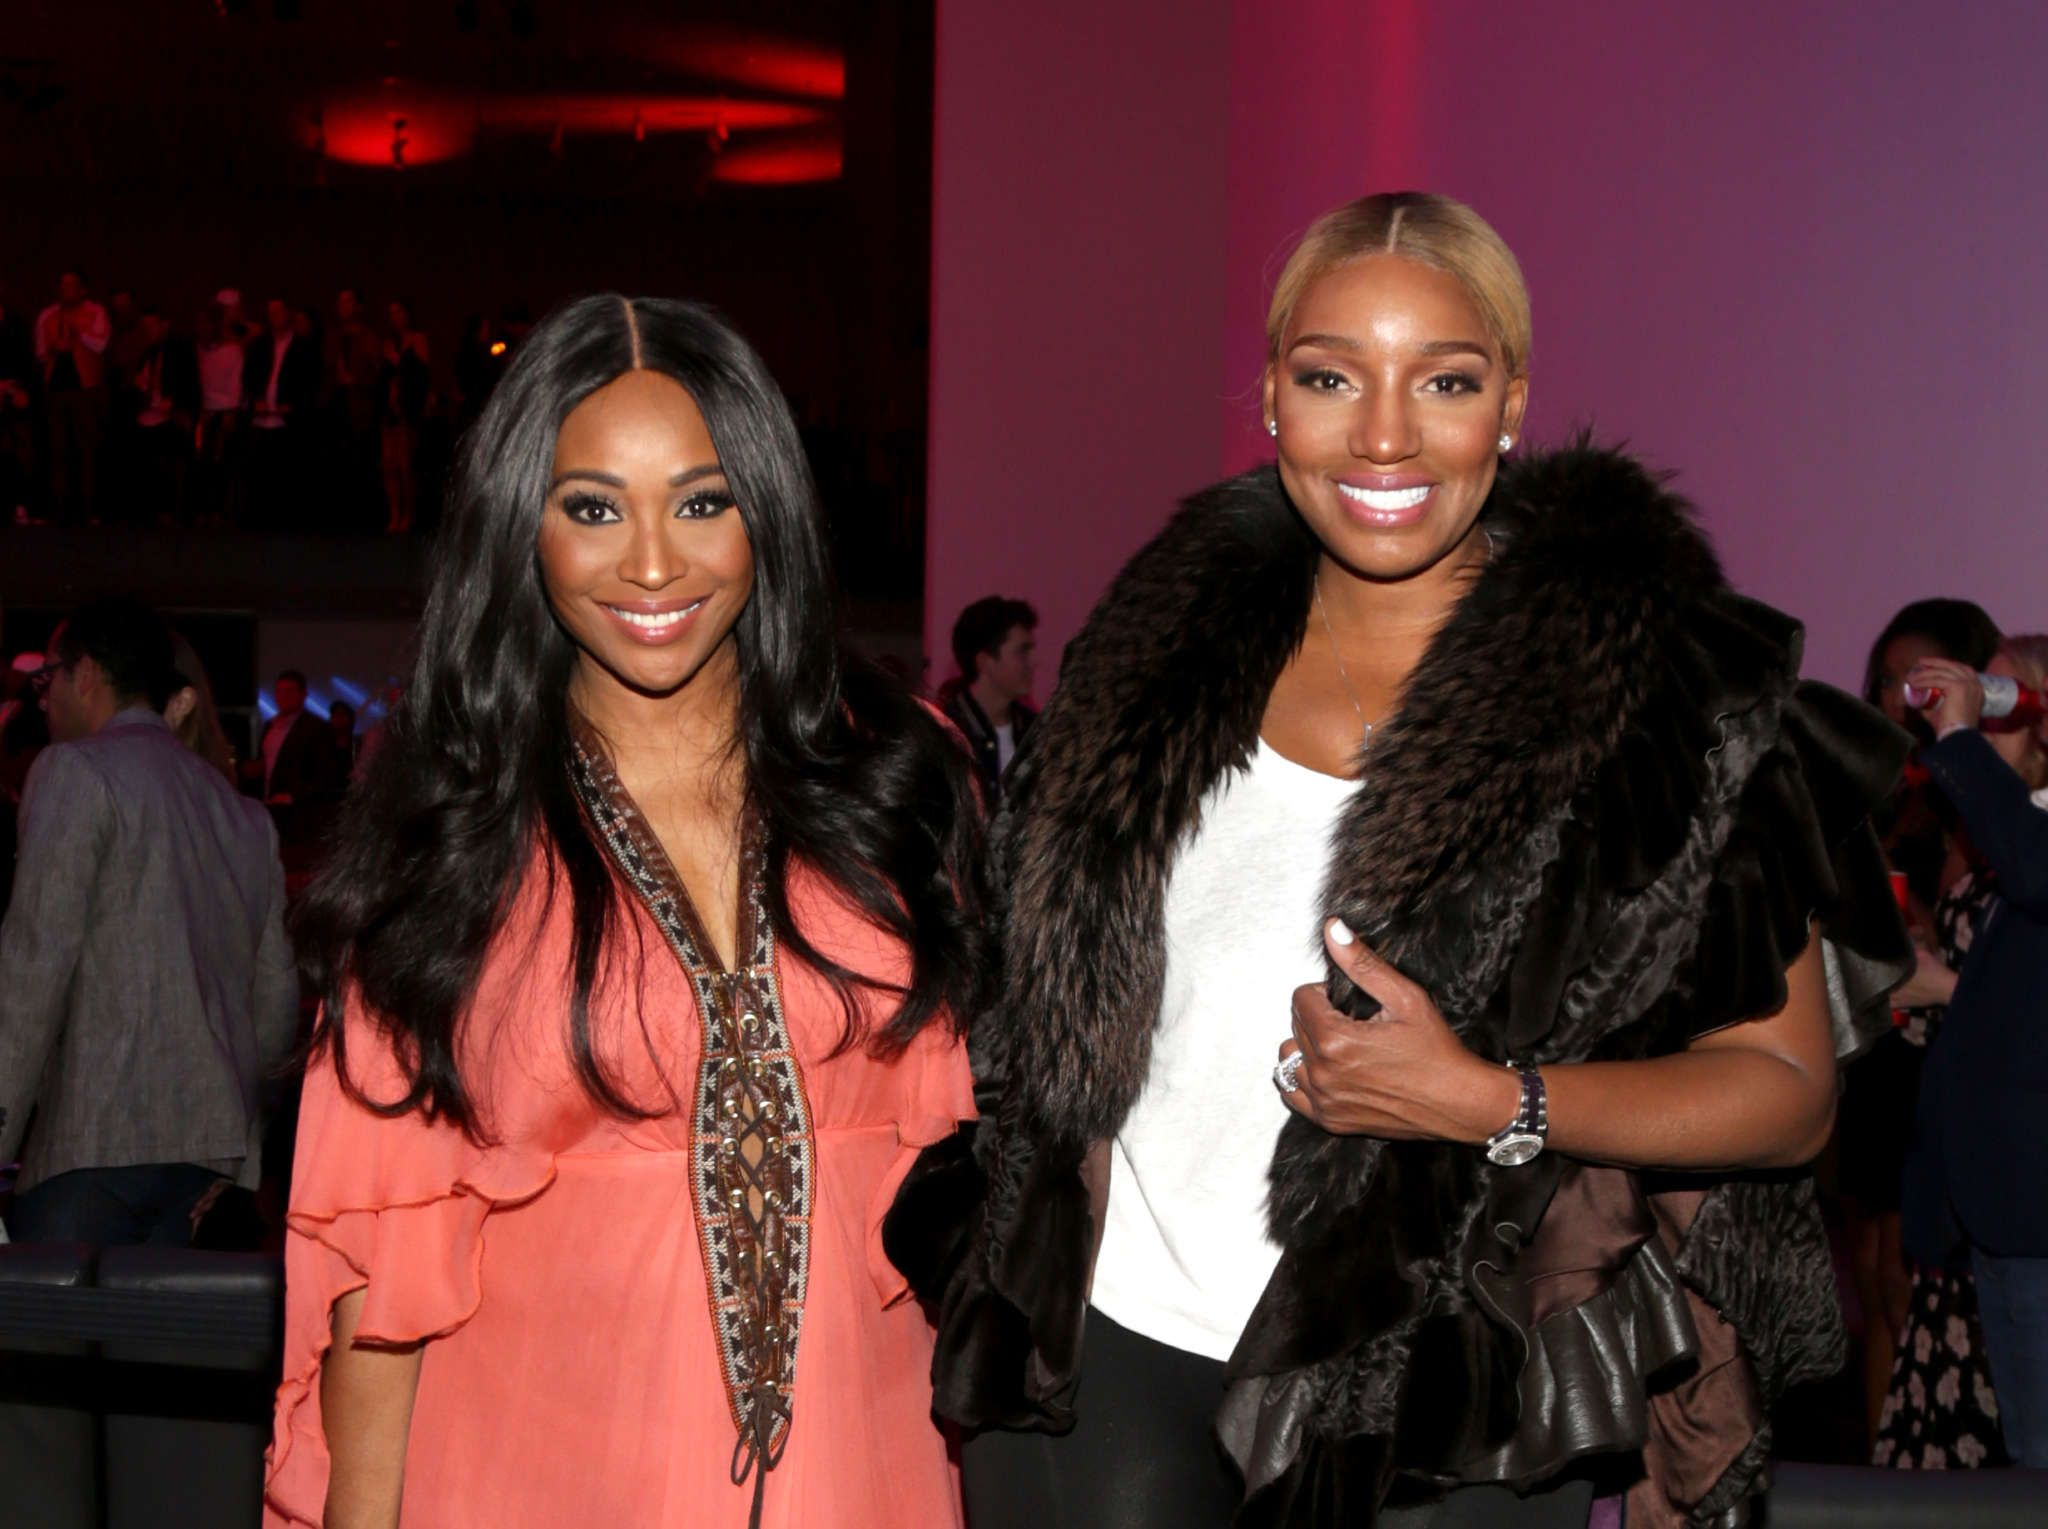 Cynthia Bailey Talks About A Potential Reconciliation With